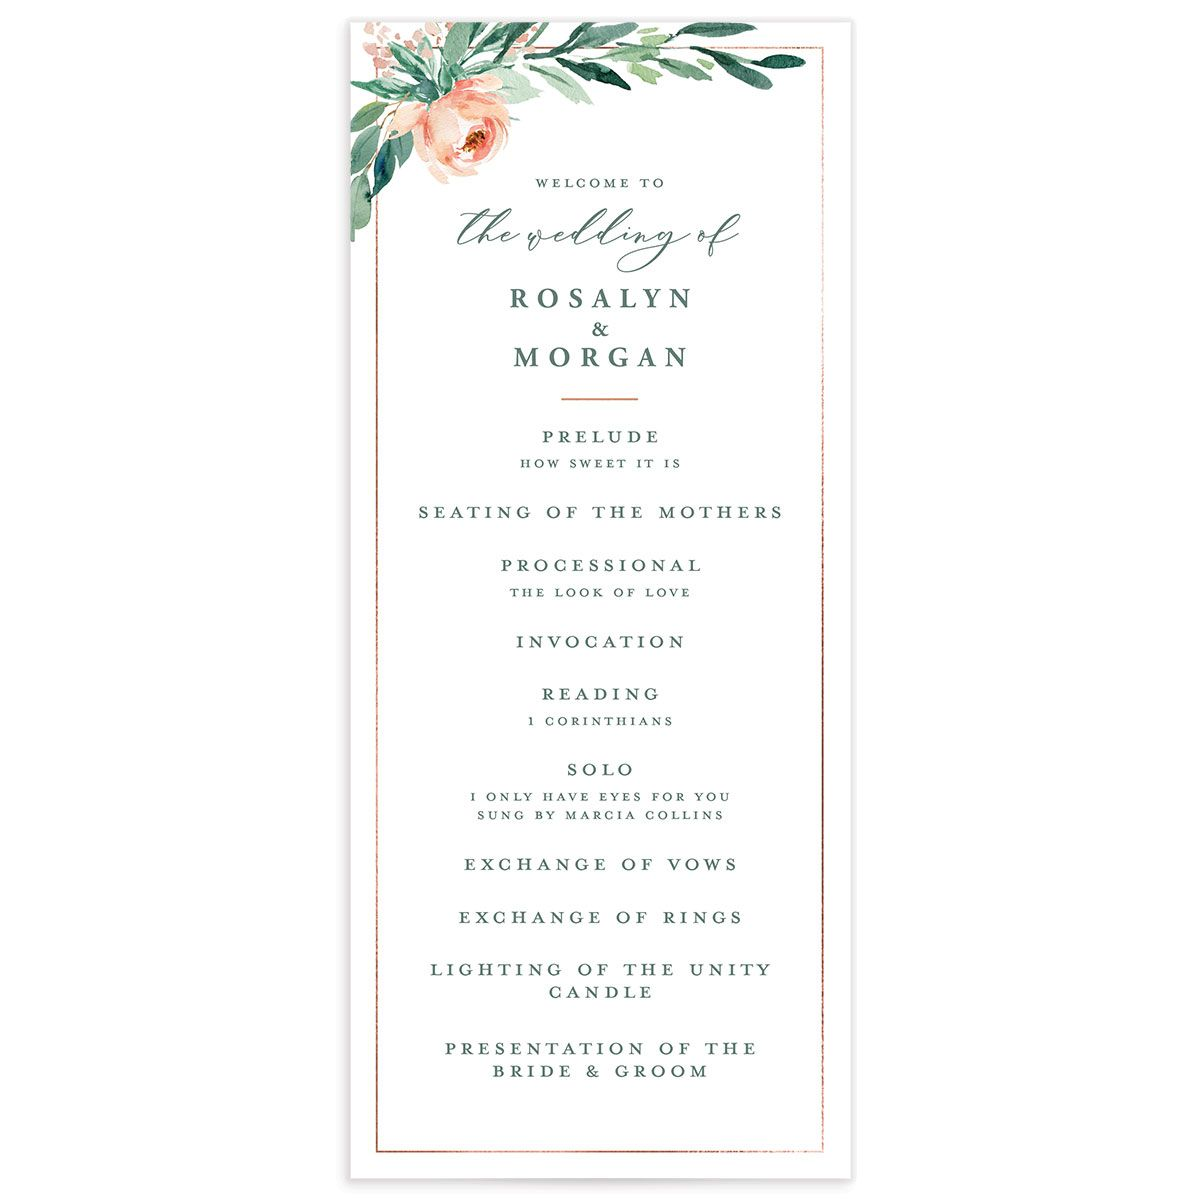 Gilded Botanical wedding program front